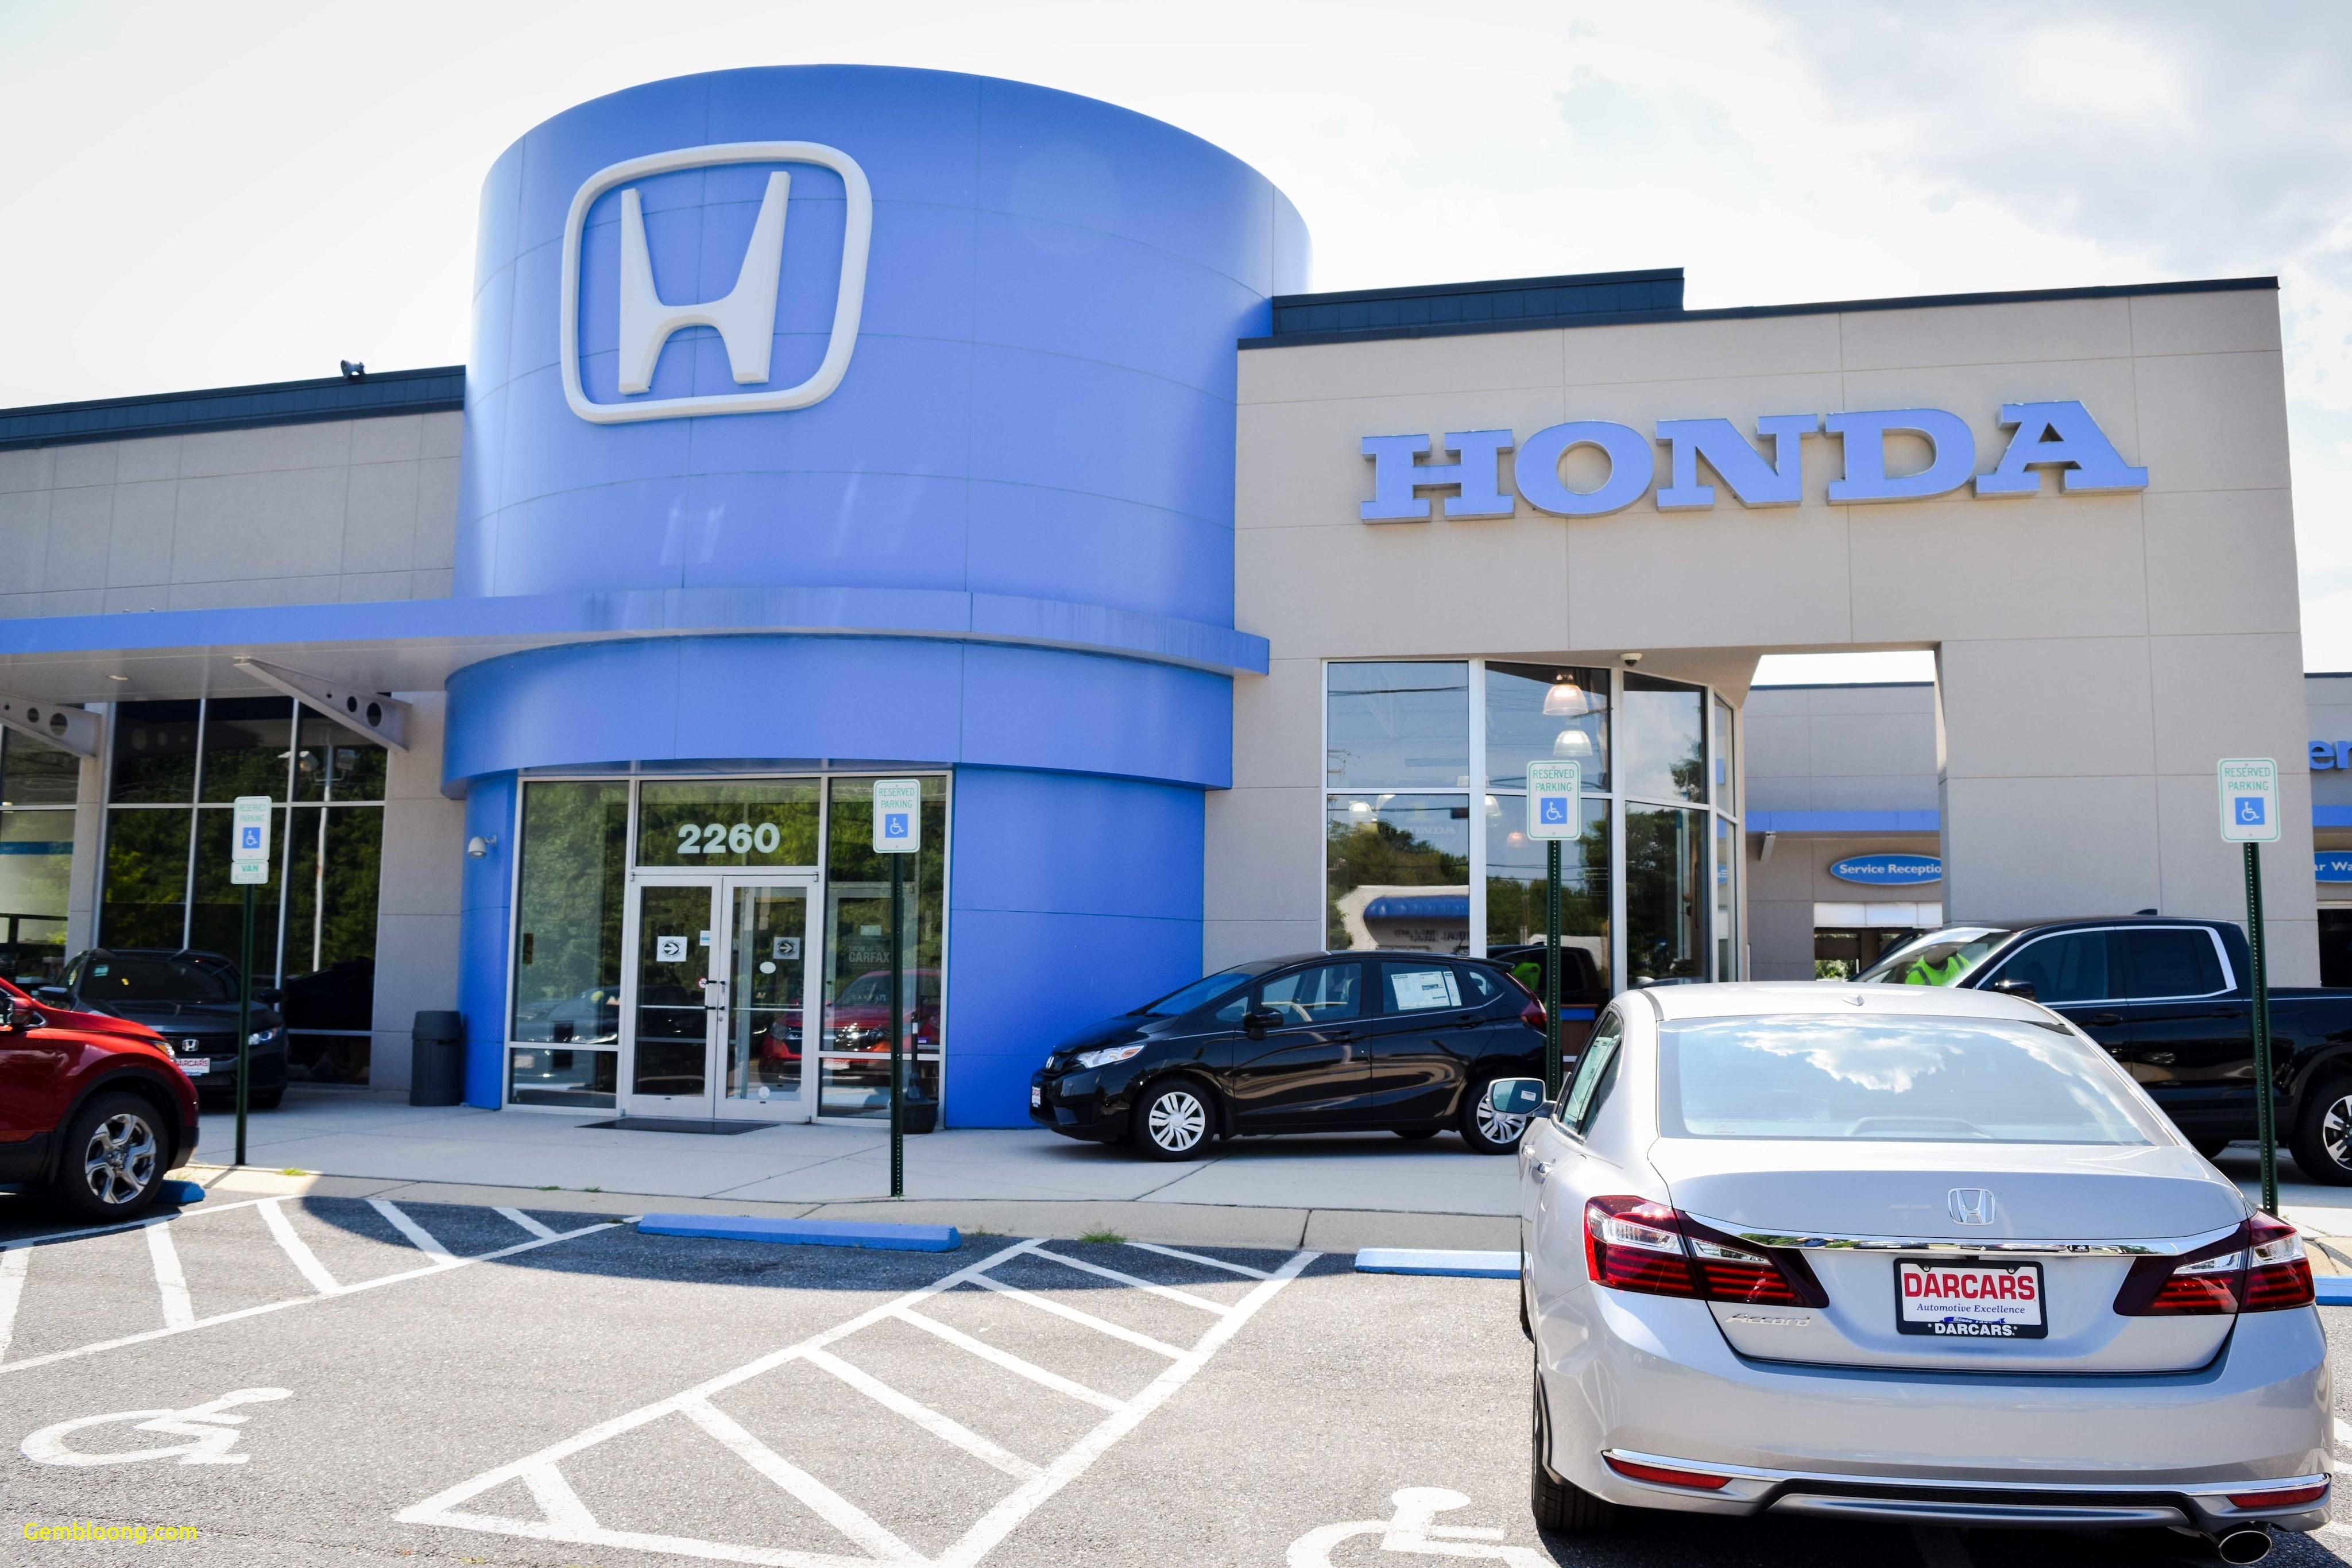 darcars honda your local new honda and used car dealership and source for auto repair